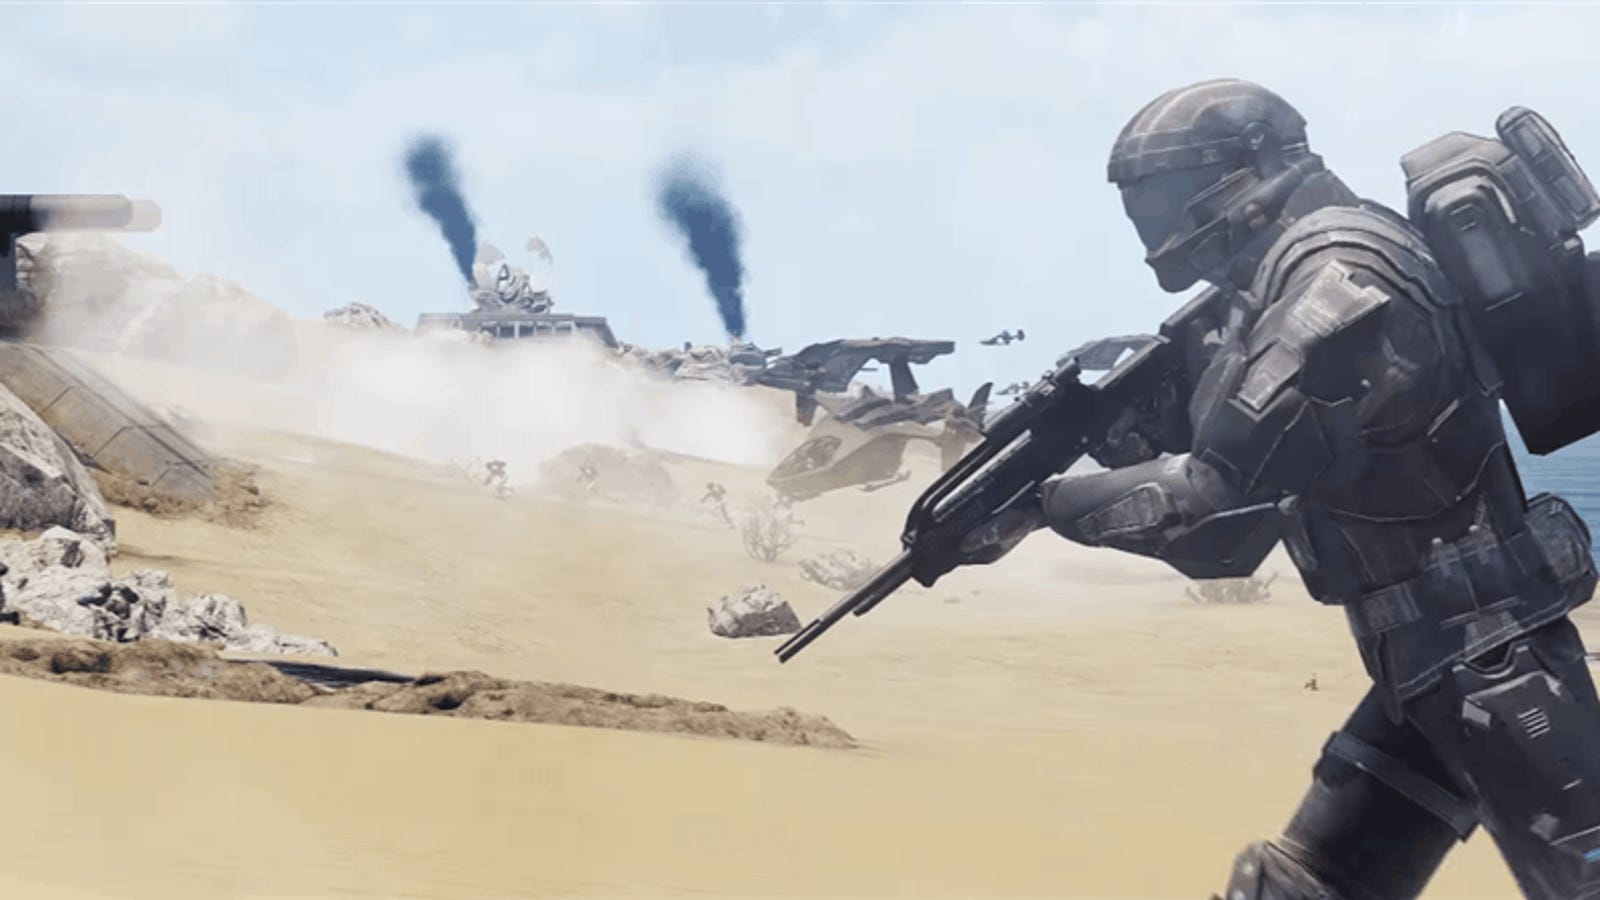 Mod Turns Serious Military Shooter Into Giant Halo Game